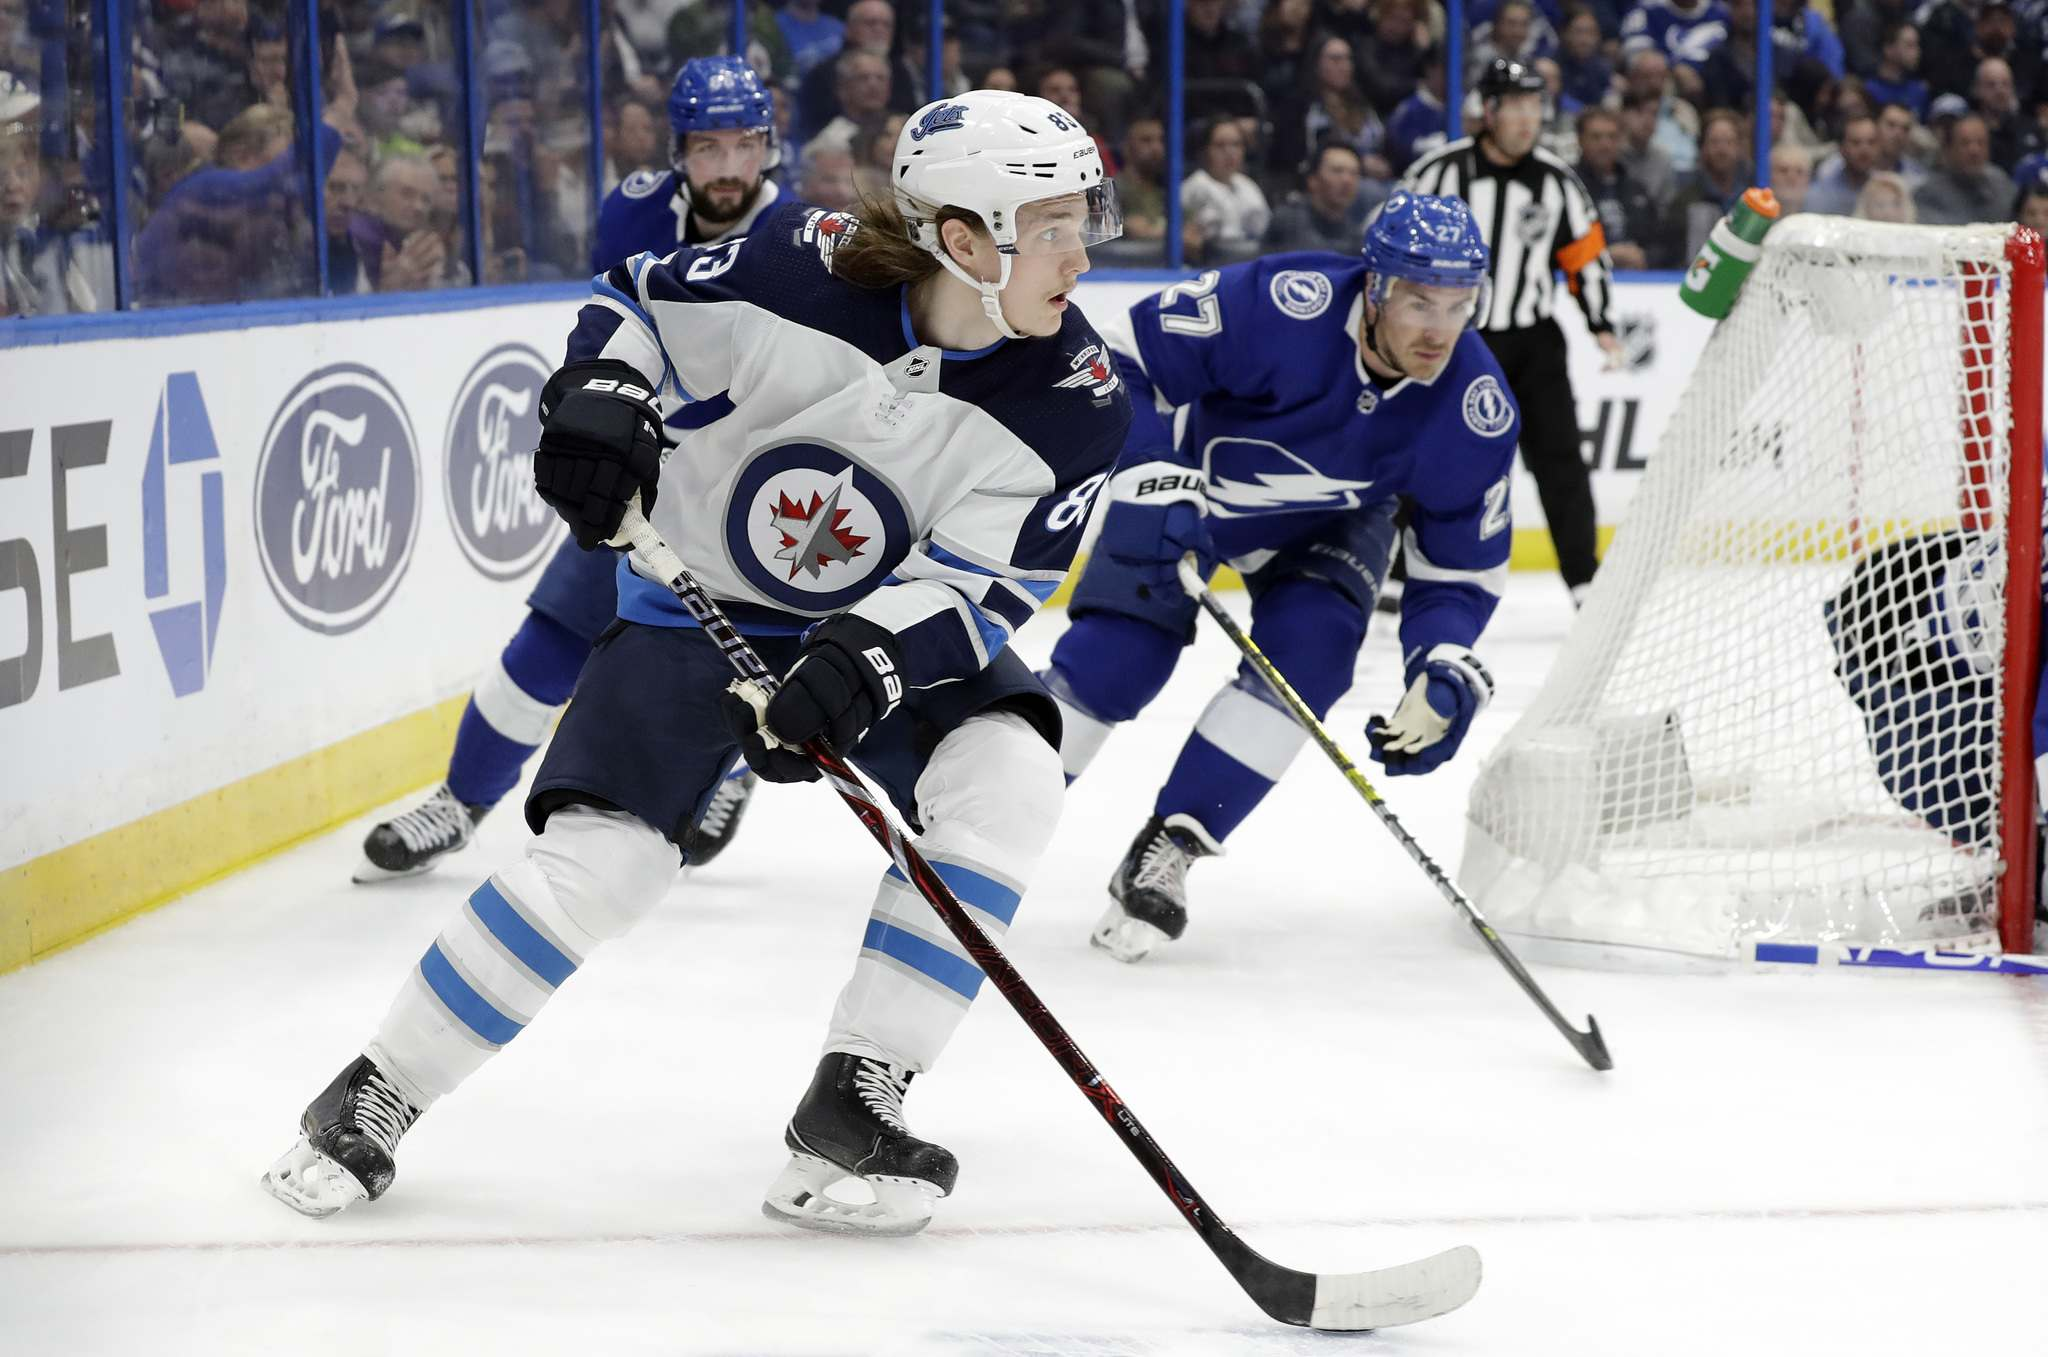 """""""Everything's going fine... He's in Winnipeg and he wants to stay. I can't get into specifics but they're going fine,"""" Mike Curran, agent for Jets defenseman Sami Niku said in a phone interview. (Chris O'Meara / The Associated Press files)</p>"""